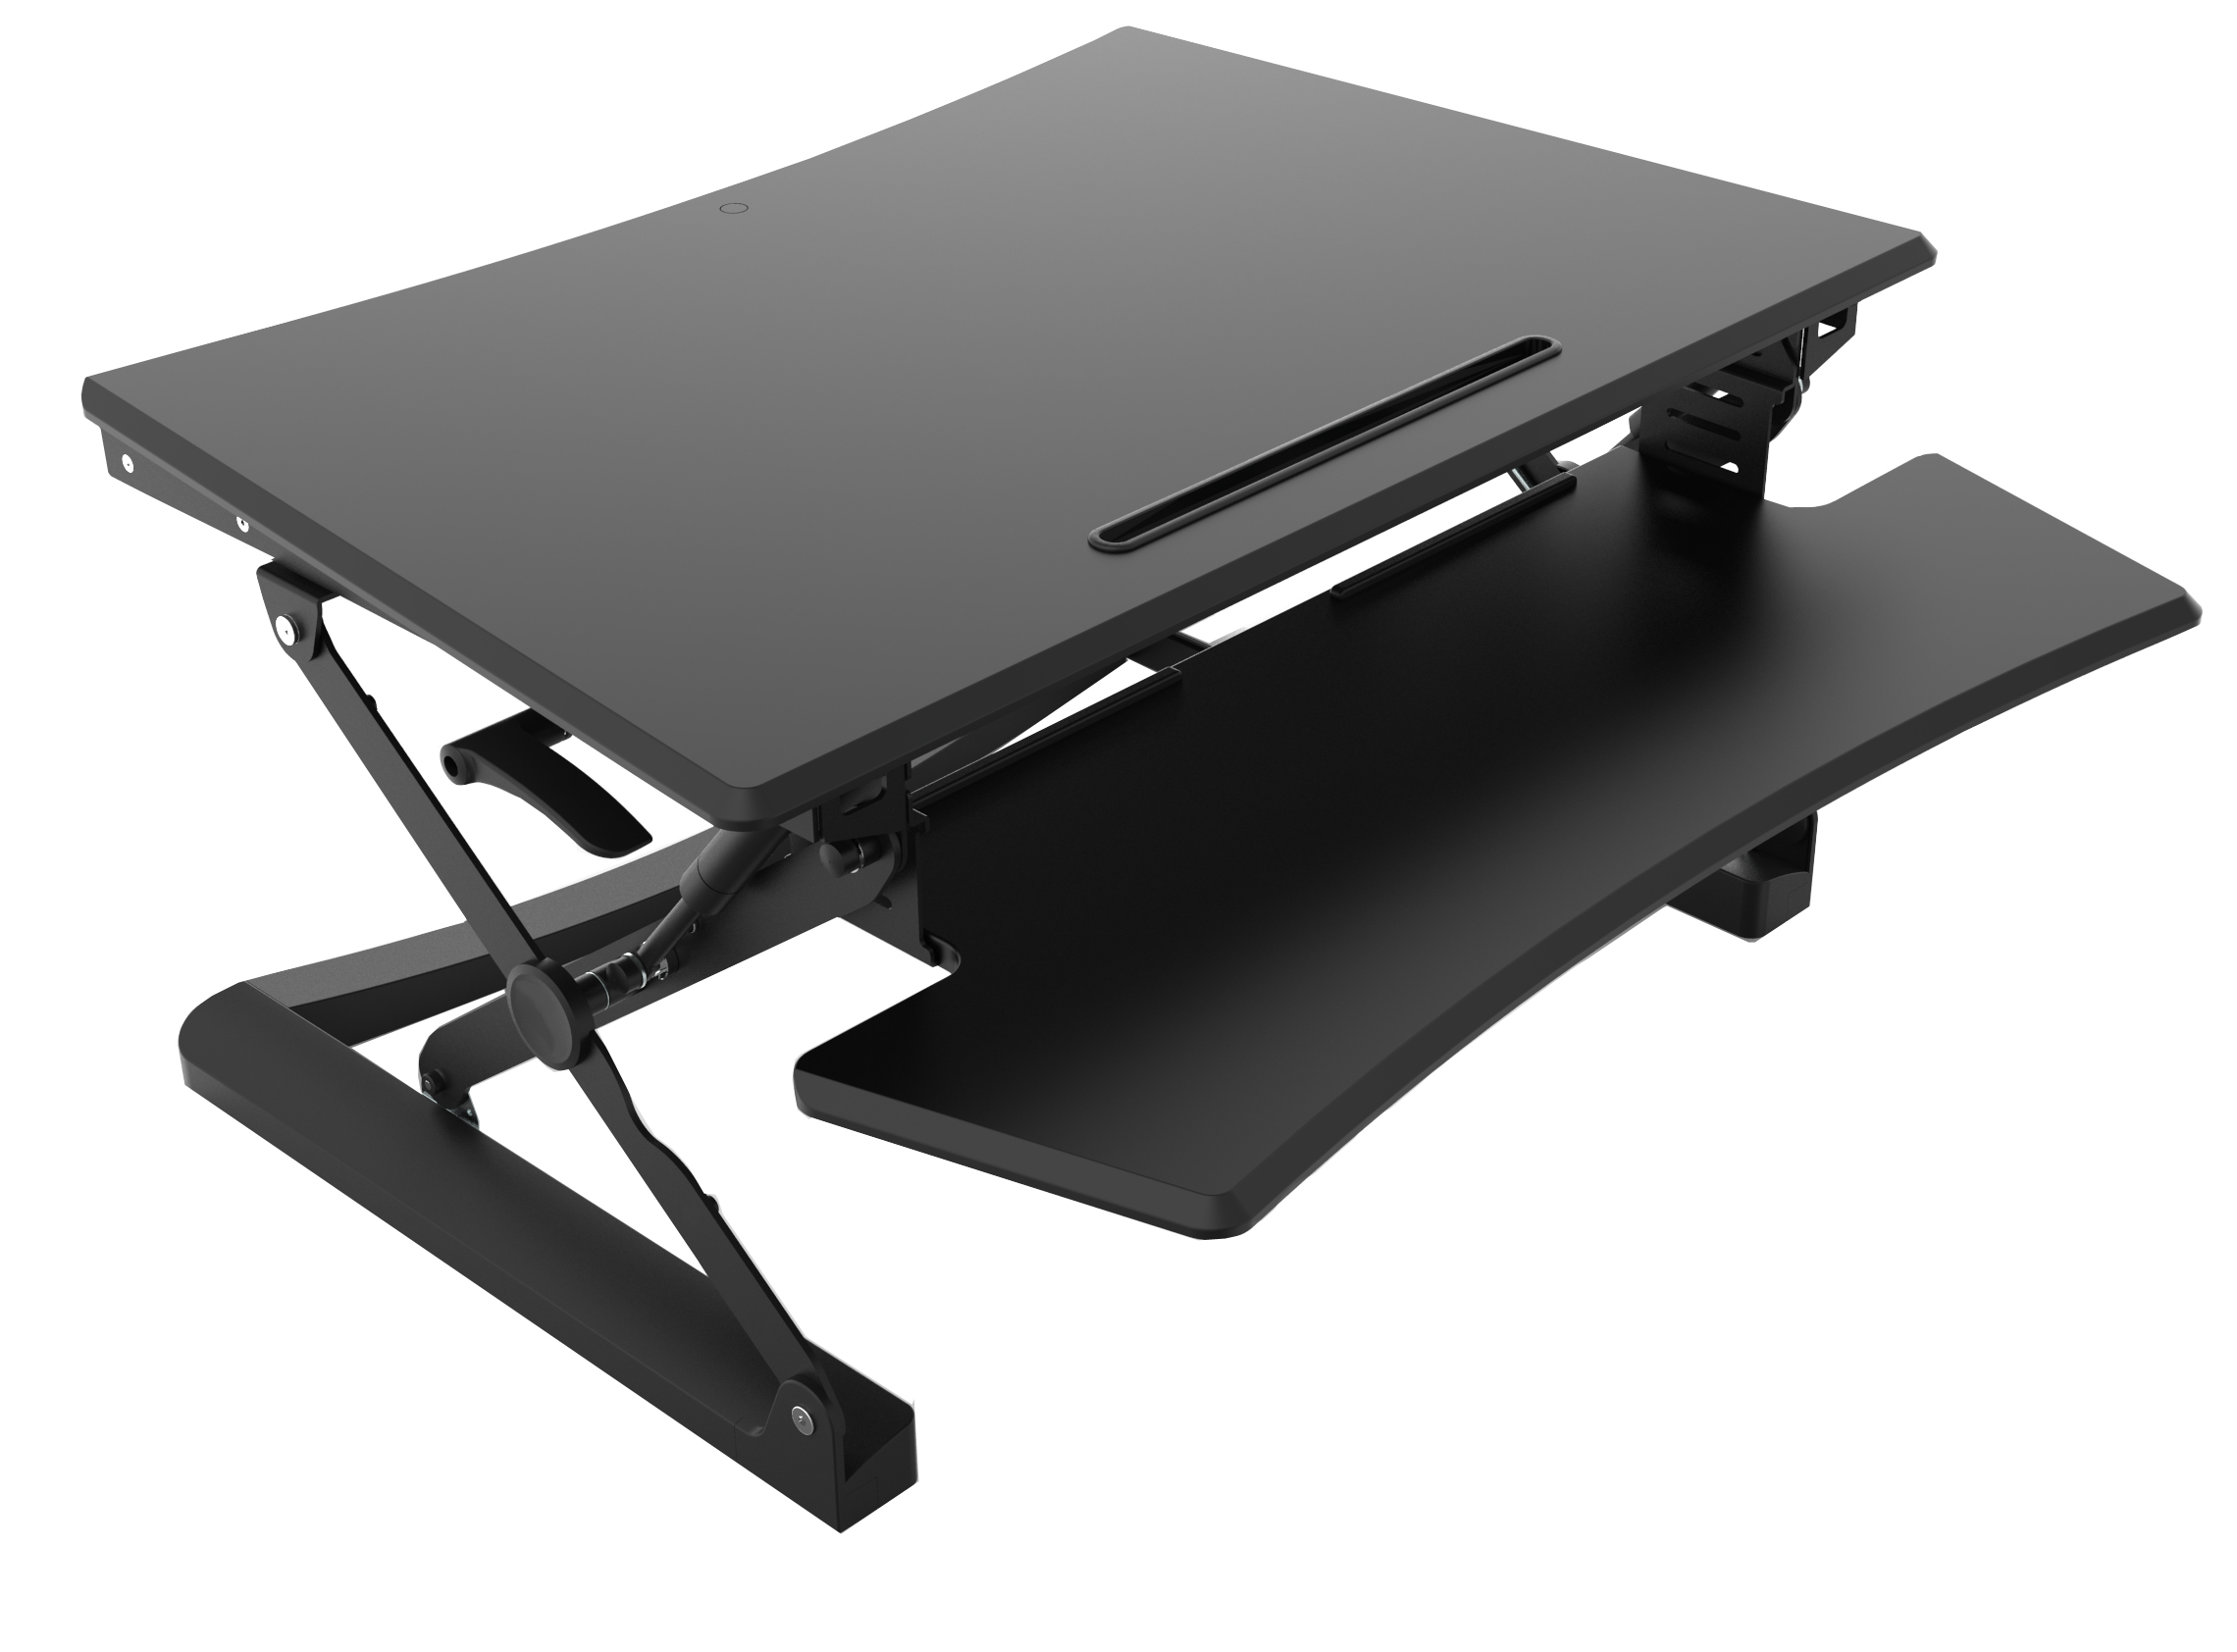 Height Adjustable Desktop Platforms